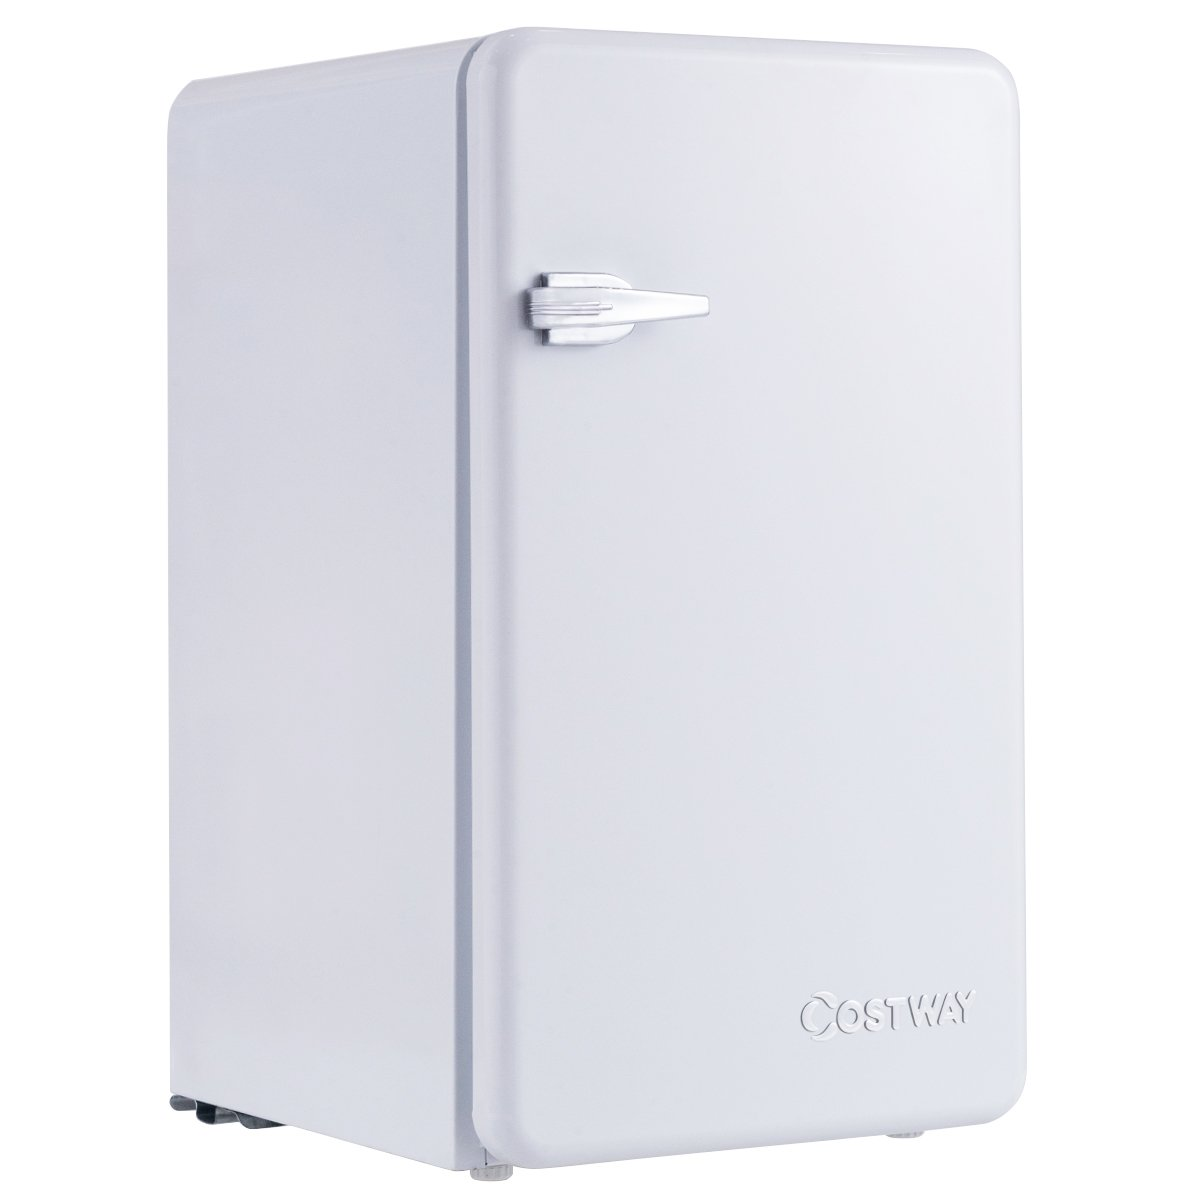 Costway Compact Refrigerator Single Door Mini Fridge with Freezer, 3.2 Cubic Ft. w/Handle (White)